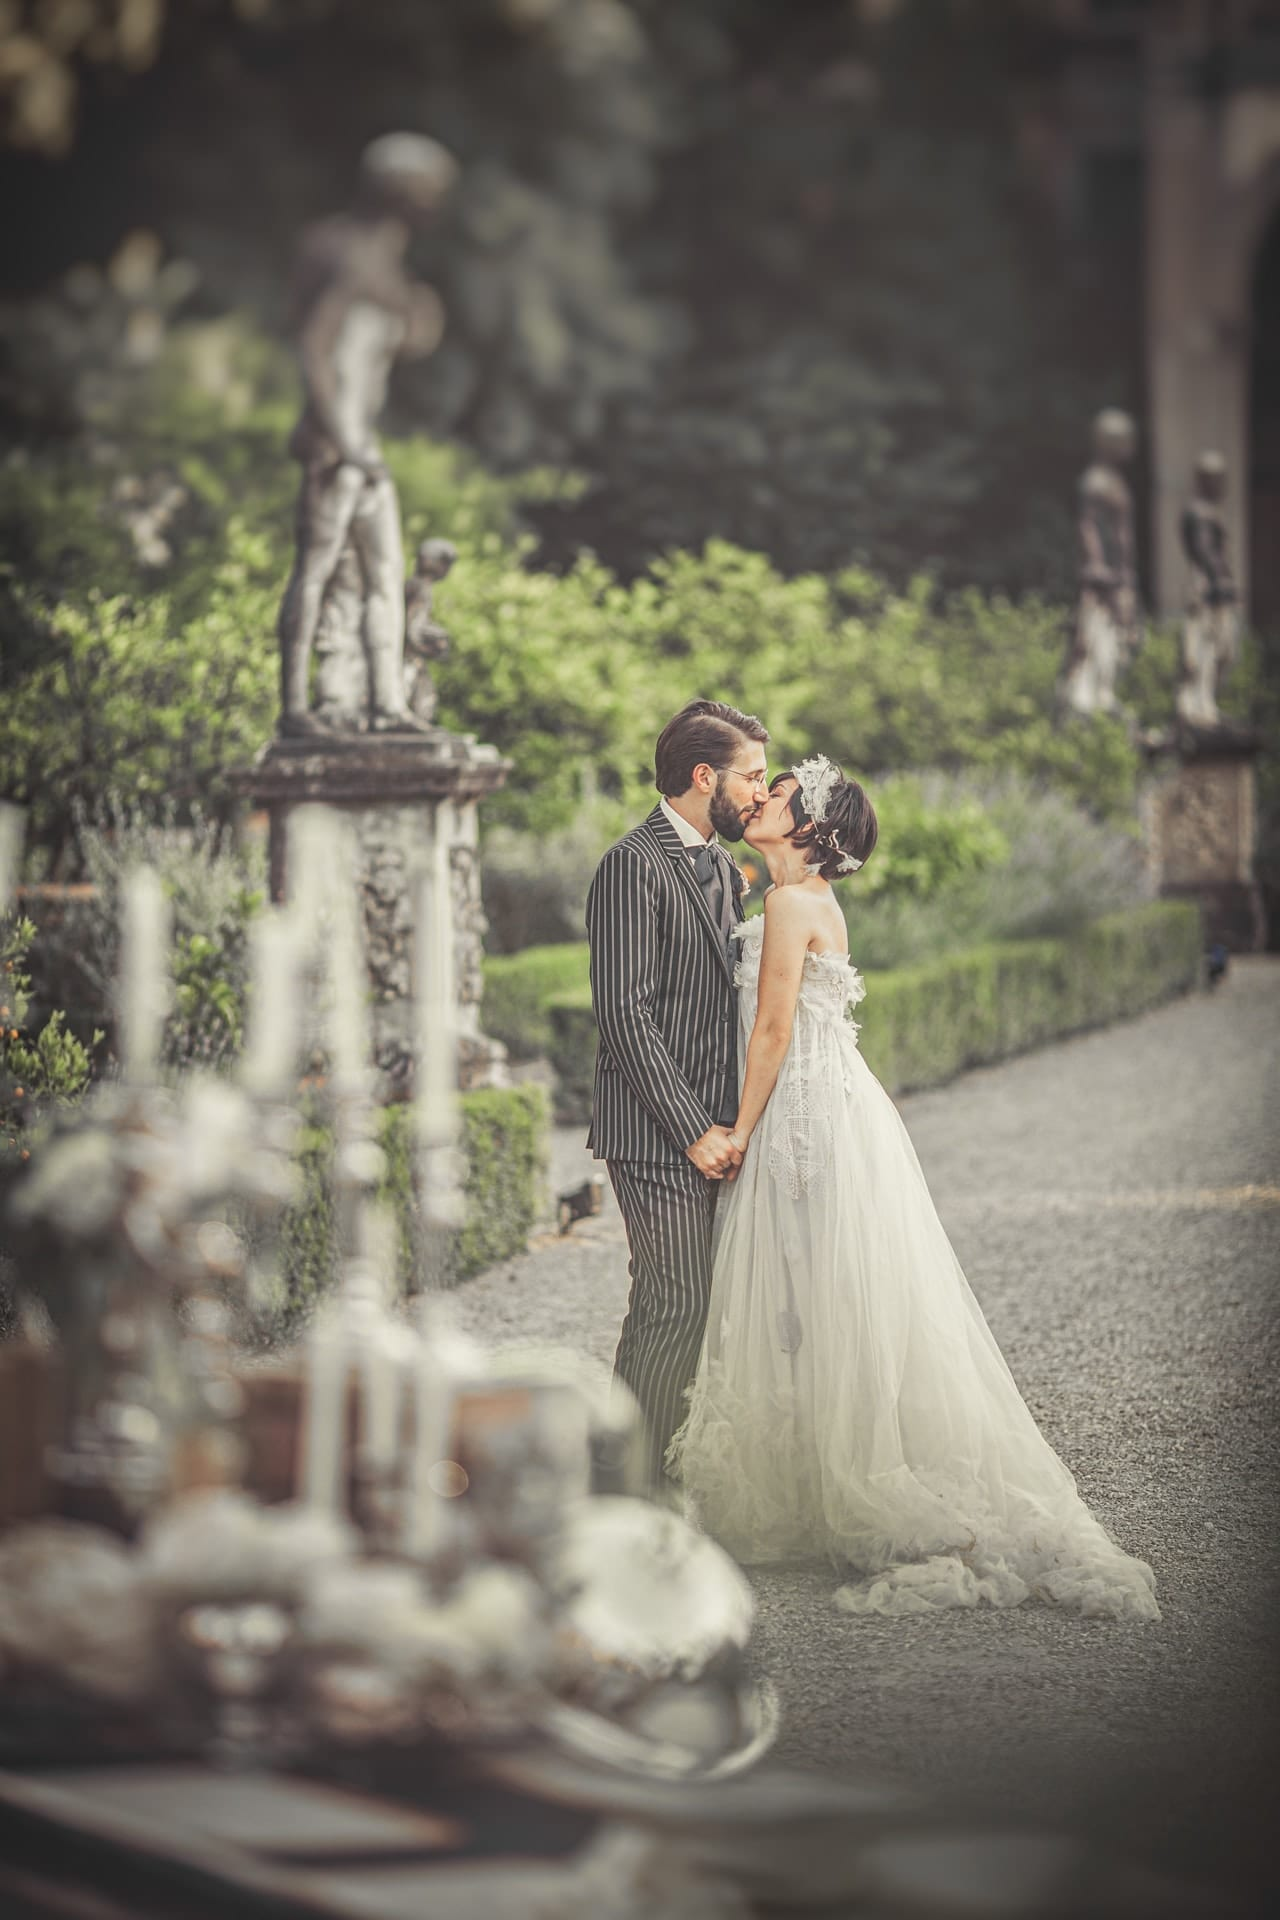 https://s3-eu-central-1.amazonaws.com/righiphotography-com/wp-content/uploads/2020/02/02183216/Wedding-Photo-Perfect-Mix-Studio-Fotografico-Righi-RIGHI-124.jpg